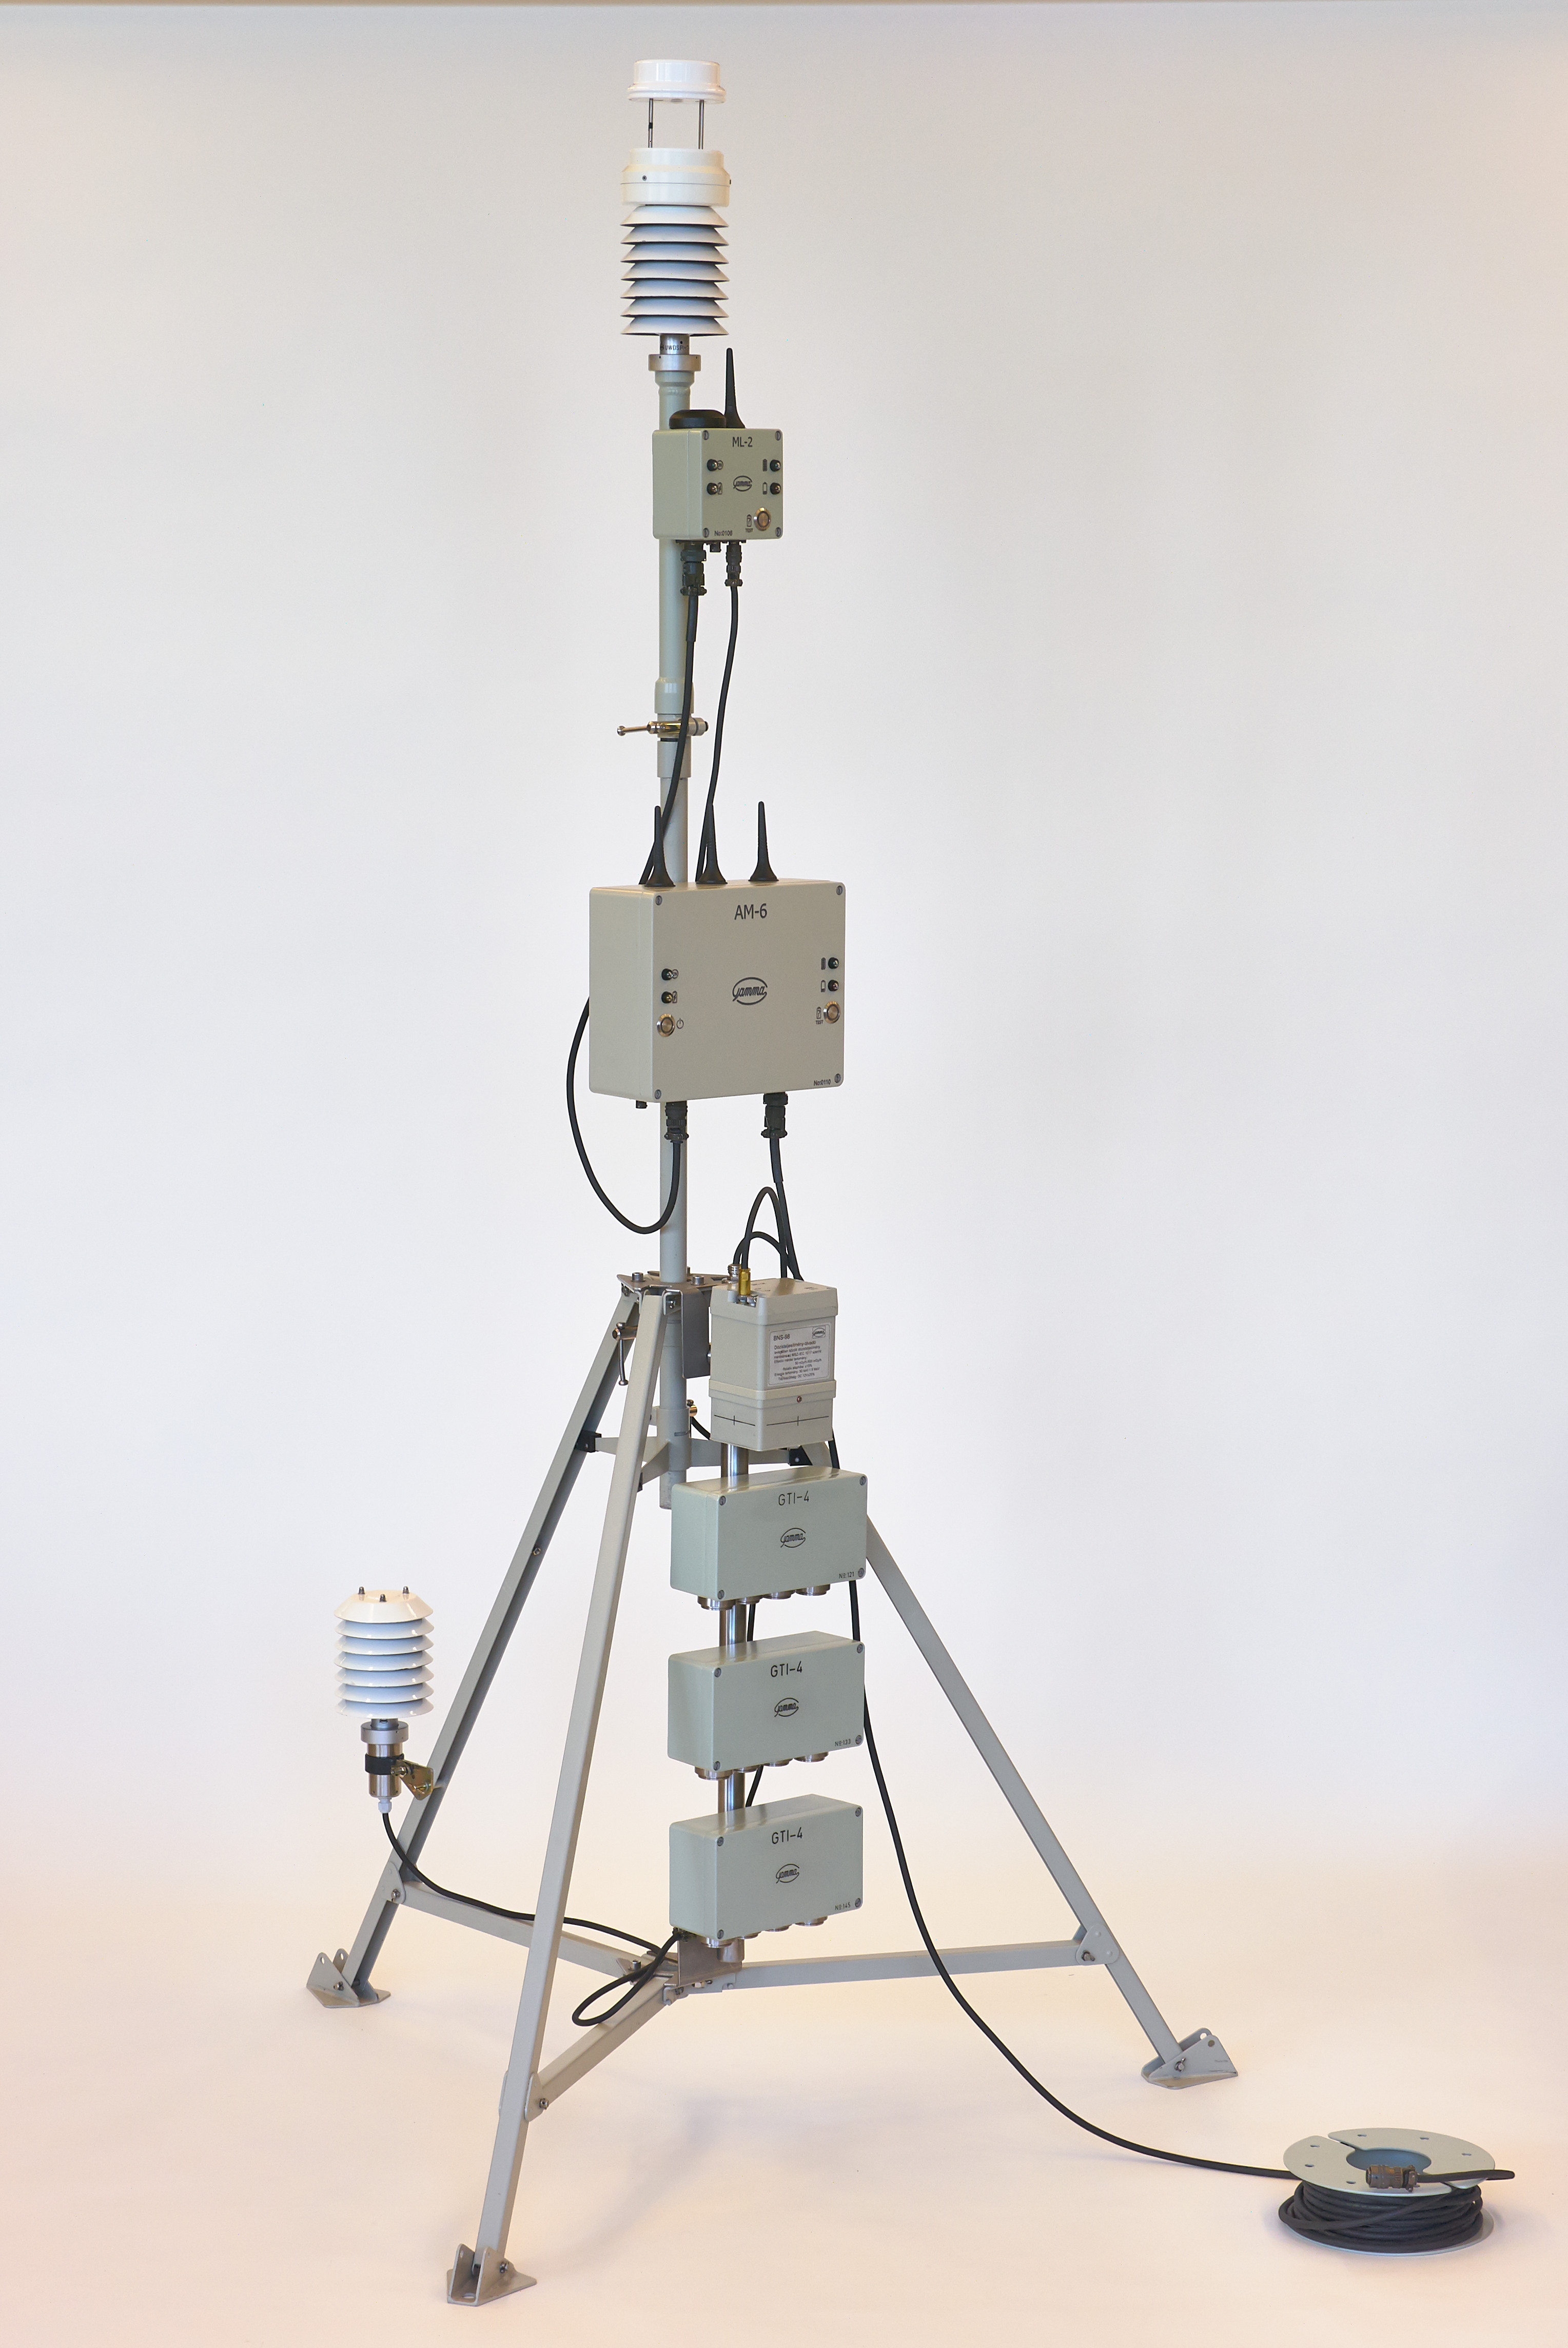 TVS-3MLU MOBILE ENVIRONMENT MONITORING STATION